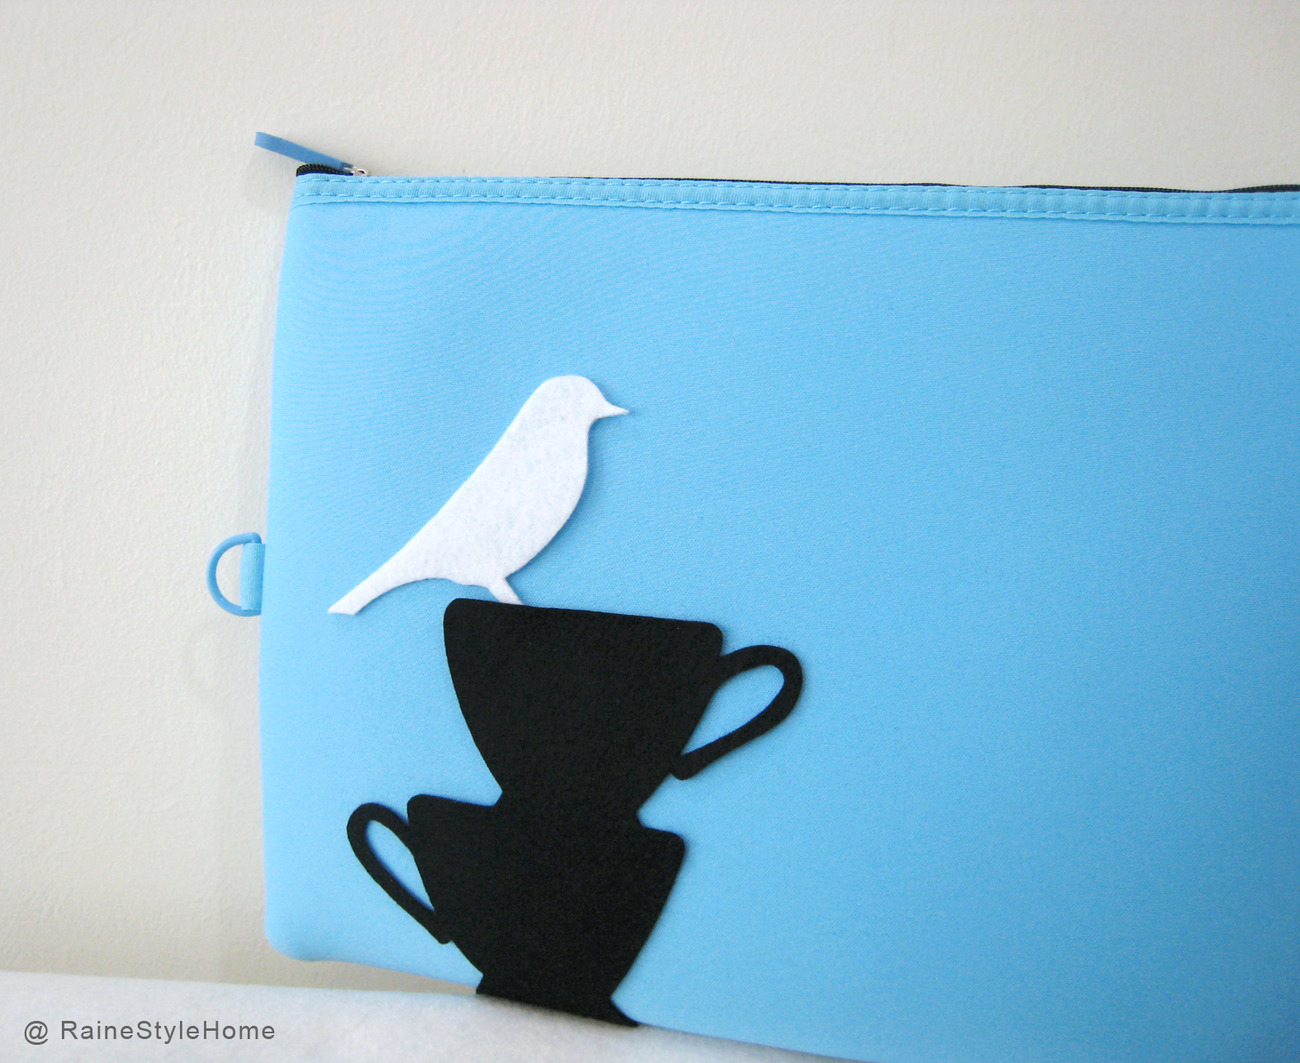 Primary image for White Bird Resting On Teacups Sky Blue Padded Pouch. Ipad Pouch Laptop Case